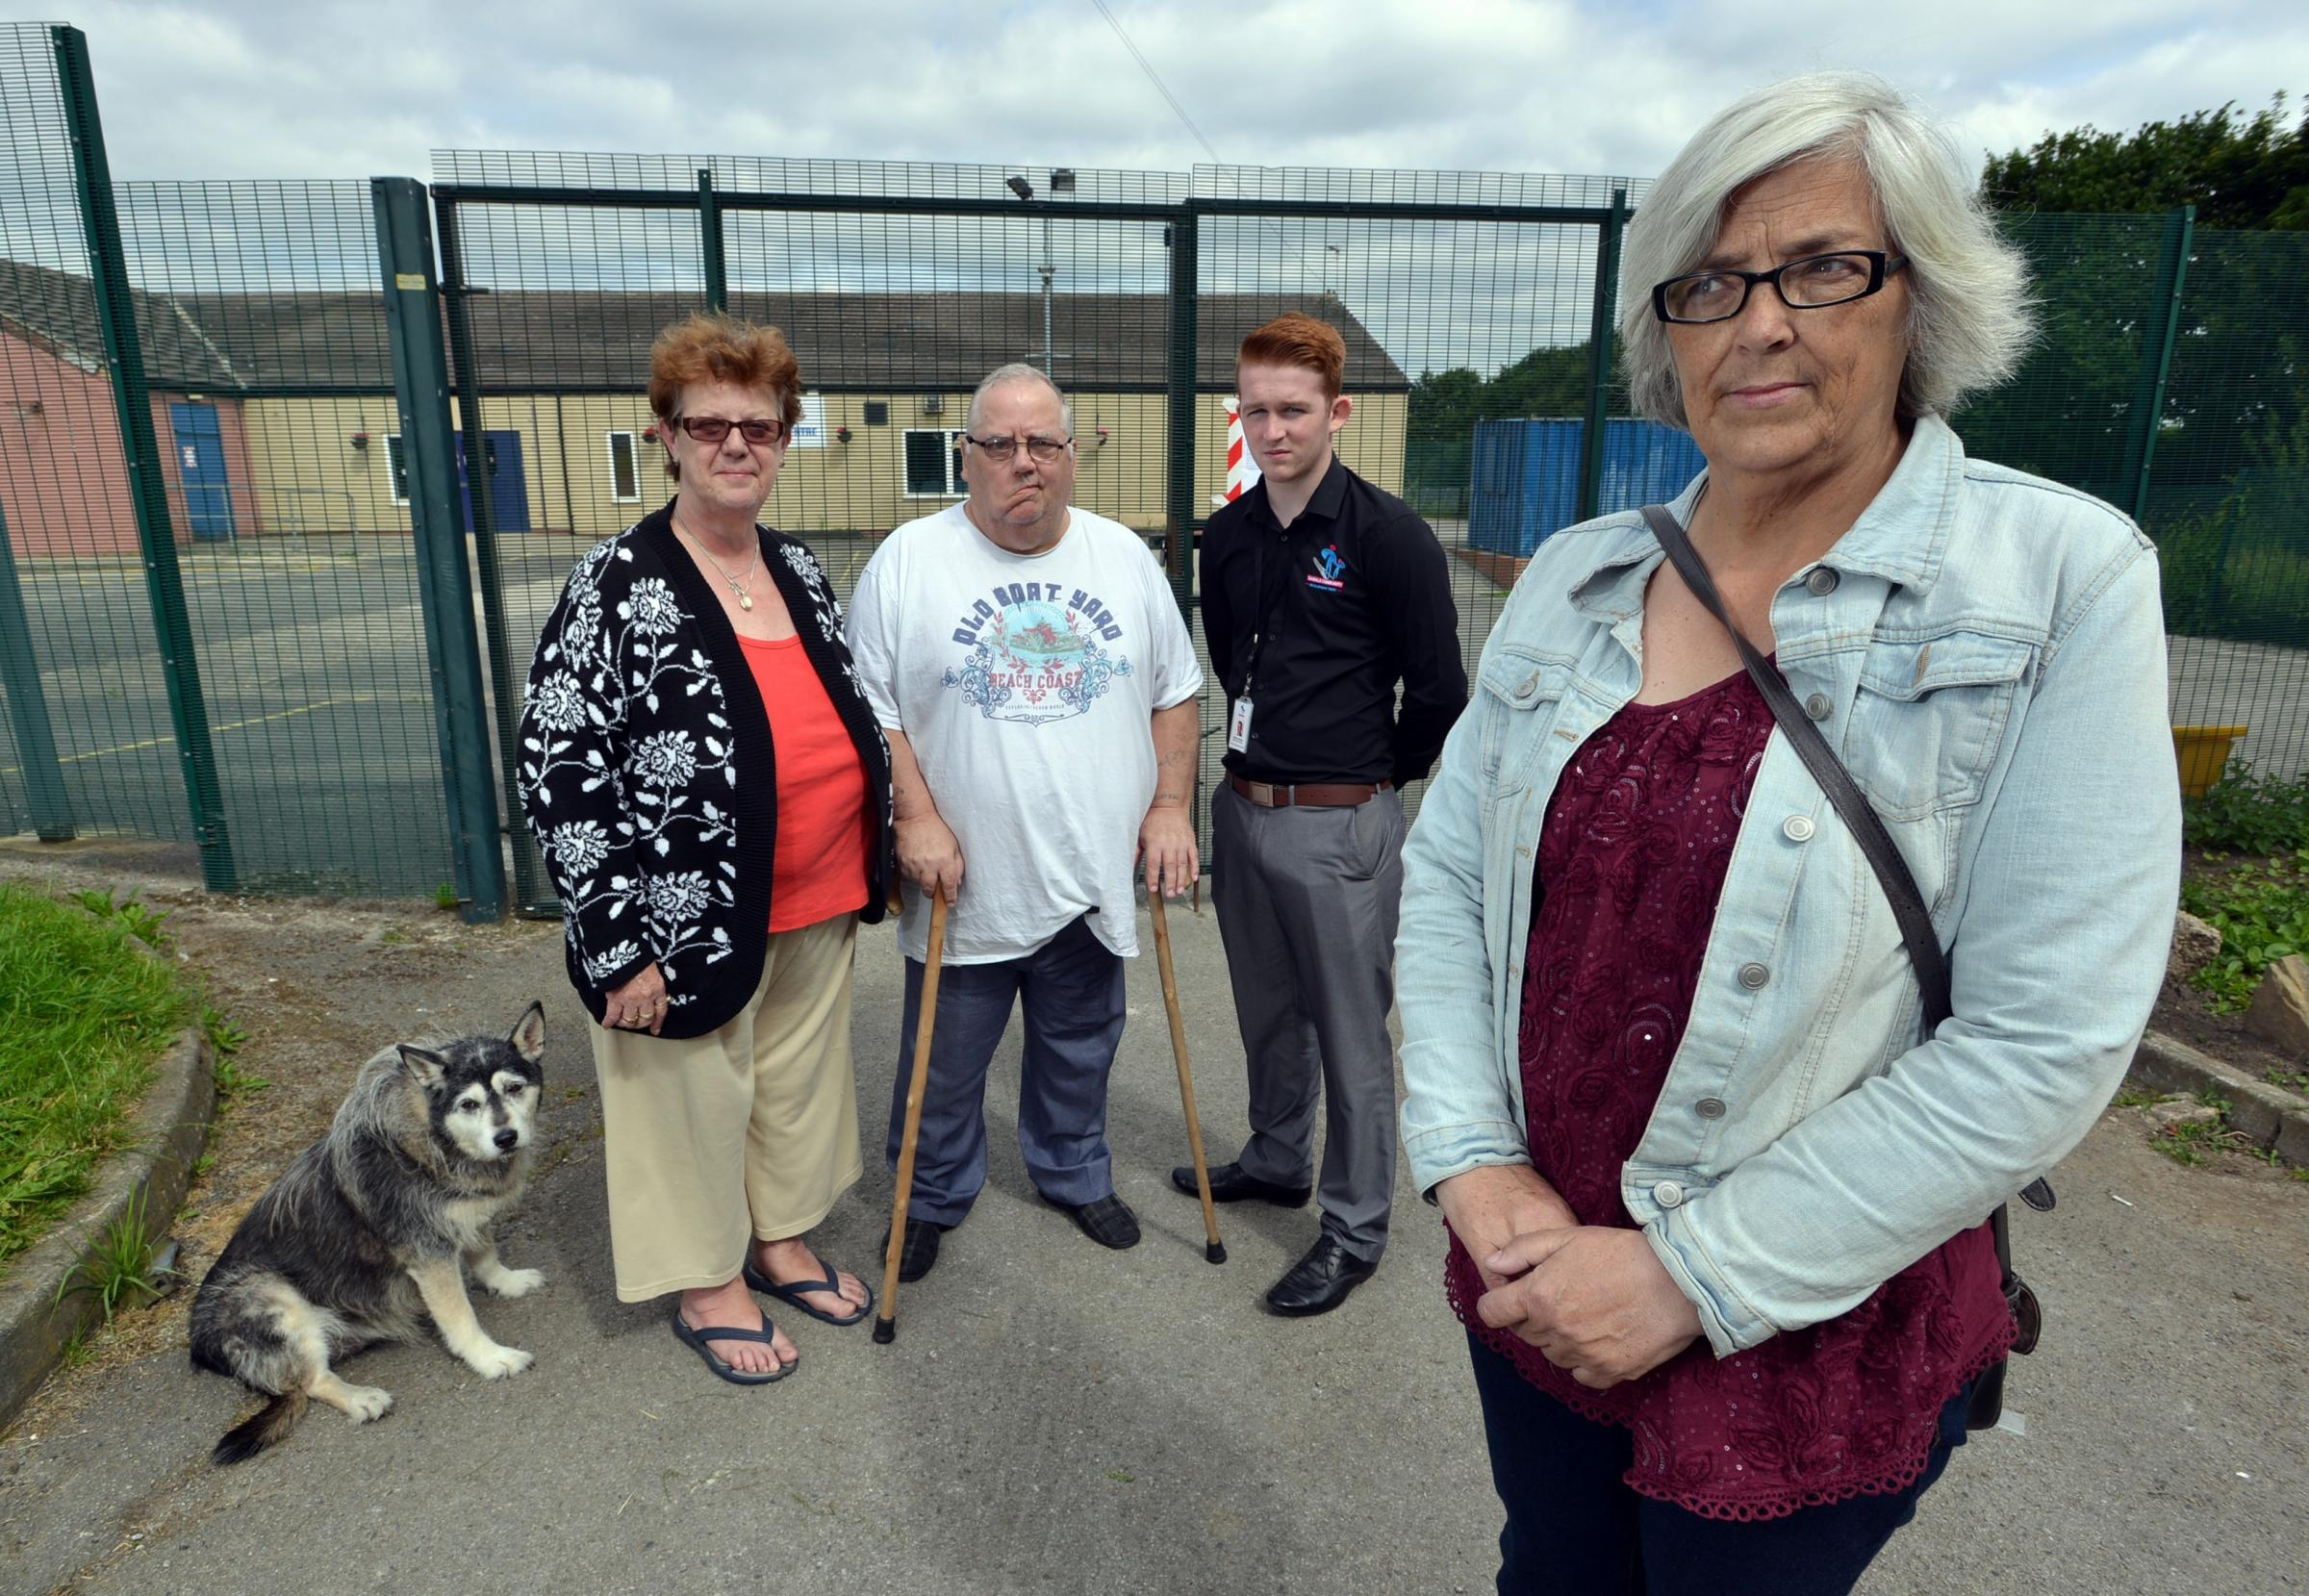 ROW: Cllr Ann Wallace with residents and users of Fagley Youth & Community Centre where the locks changed to shut them out.